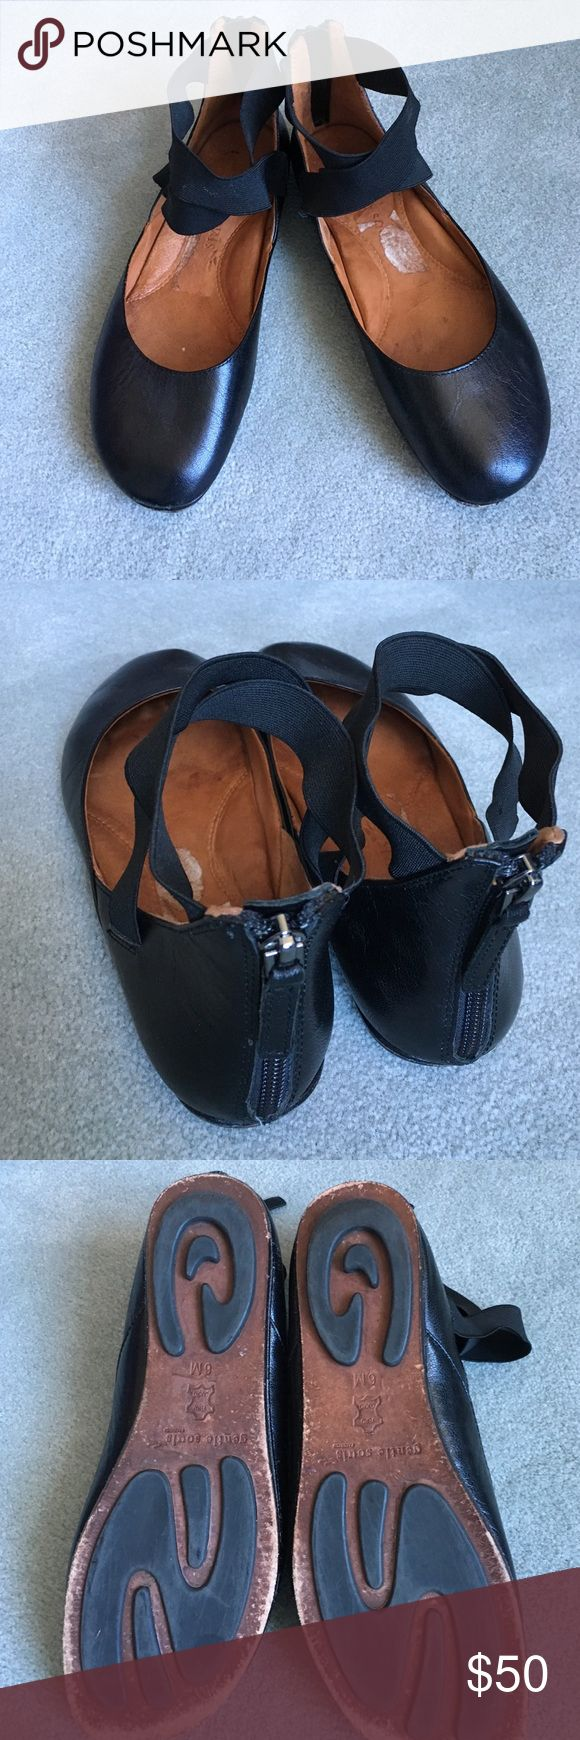 Gentle souls leather ballet flat! Comfortable shoes with amazing foot support! Like walking on a cloud! Criss cross ankle strap with zip up back makes these shoes fun and stylish! Plenty of wear left. Very high quality expensive leather shoes. Gentle souls Shoes Flats & Loafers